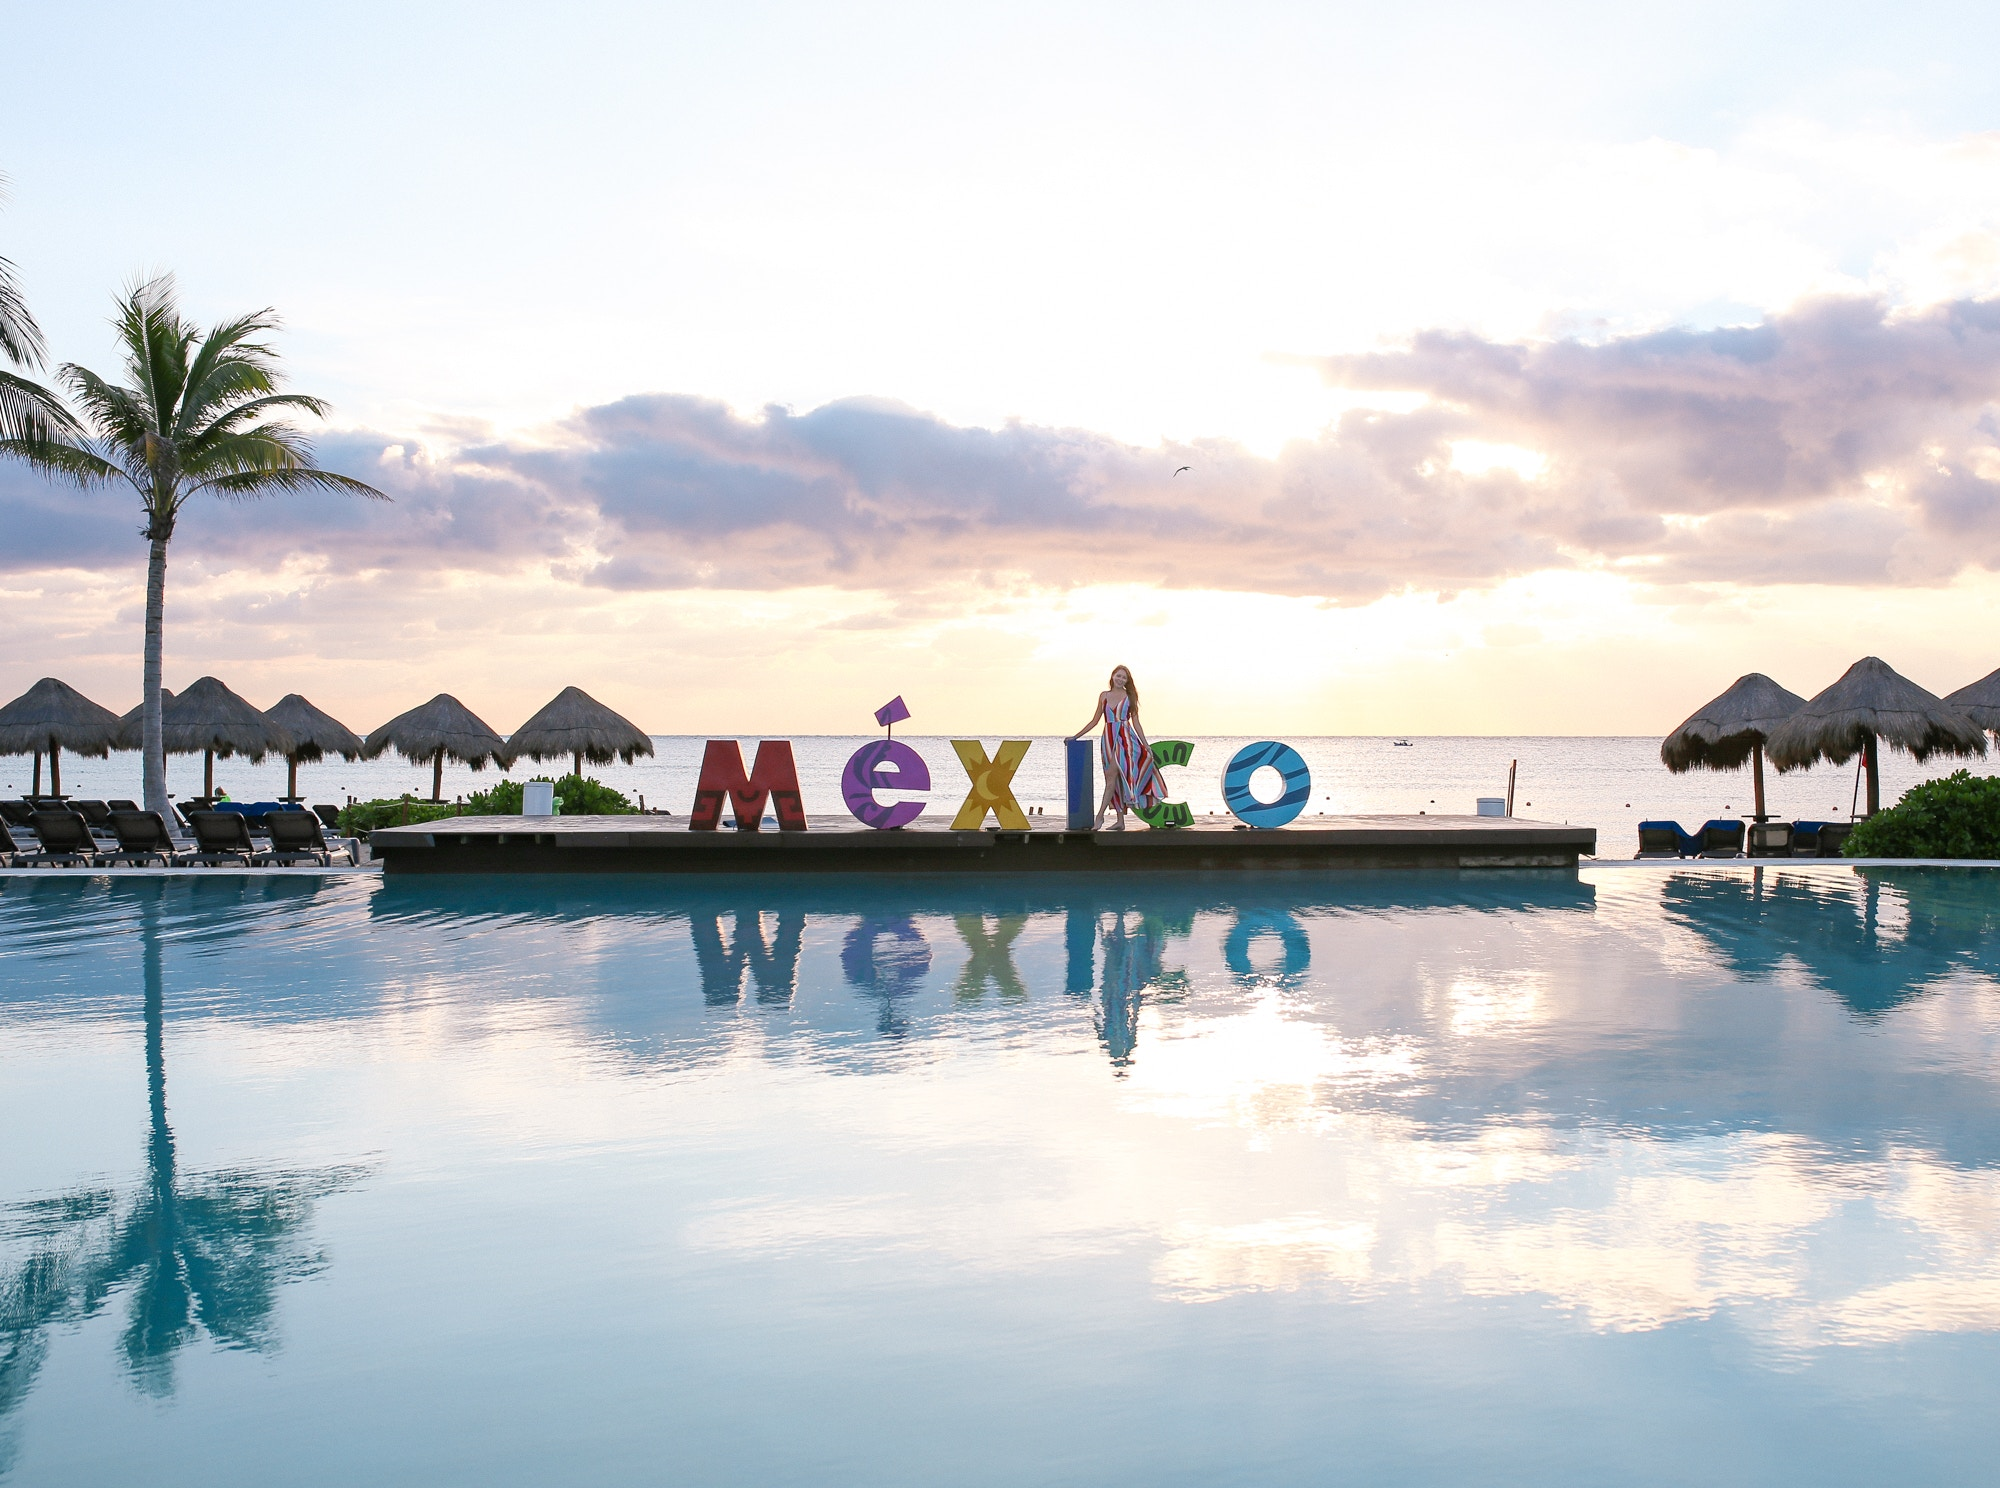 In January, I stayed at Ocean Riviera Paradise in Playa del Carmen, Mexico and had a lovely time. The food, hotel design and amenities were fabulous. Read more for my full thoughts and review on this all-inclusive resort.